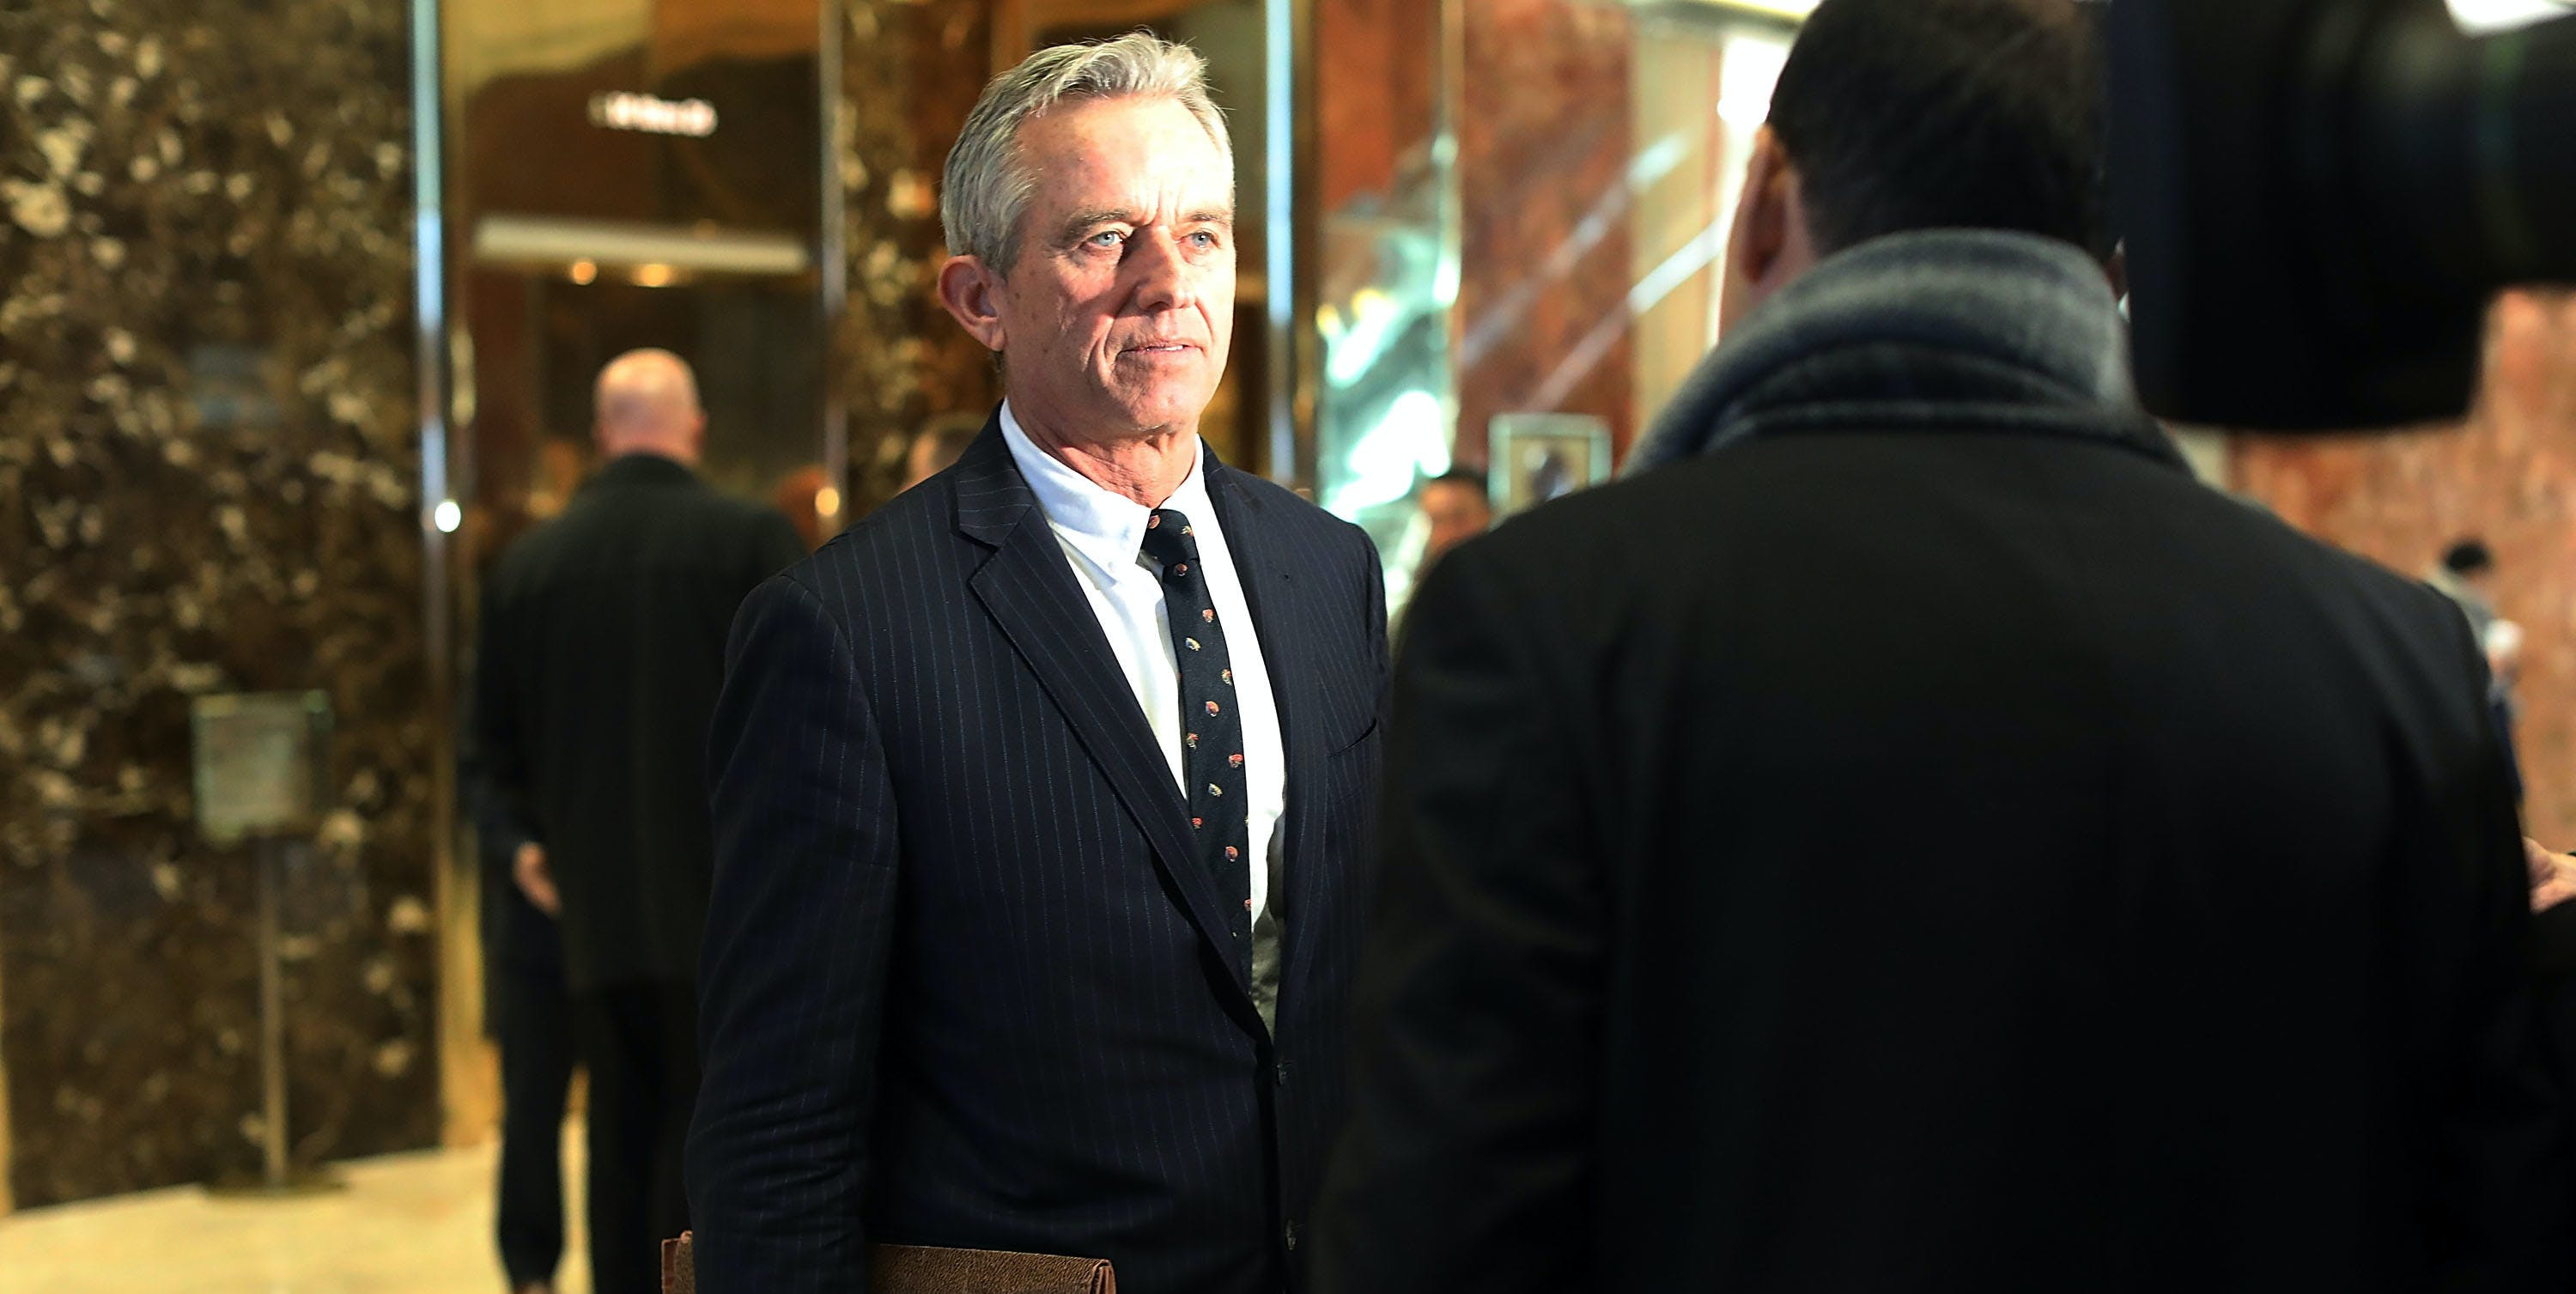 Robert Kennedy Jr., speaks to the media after his meeting at Trump Tower.